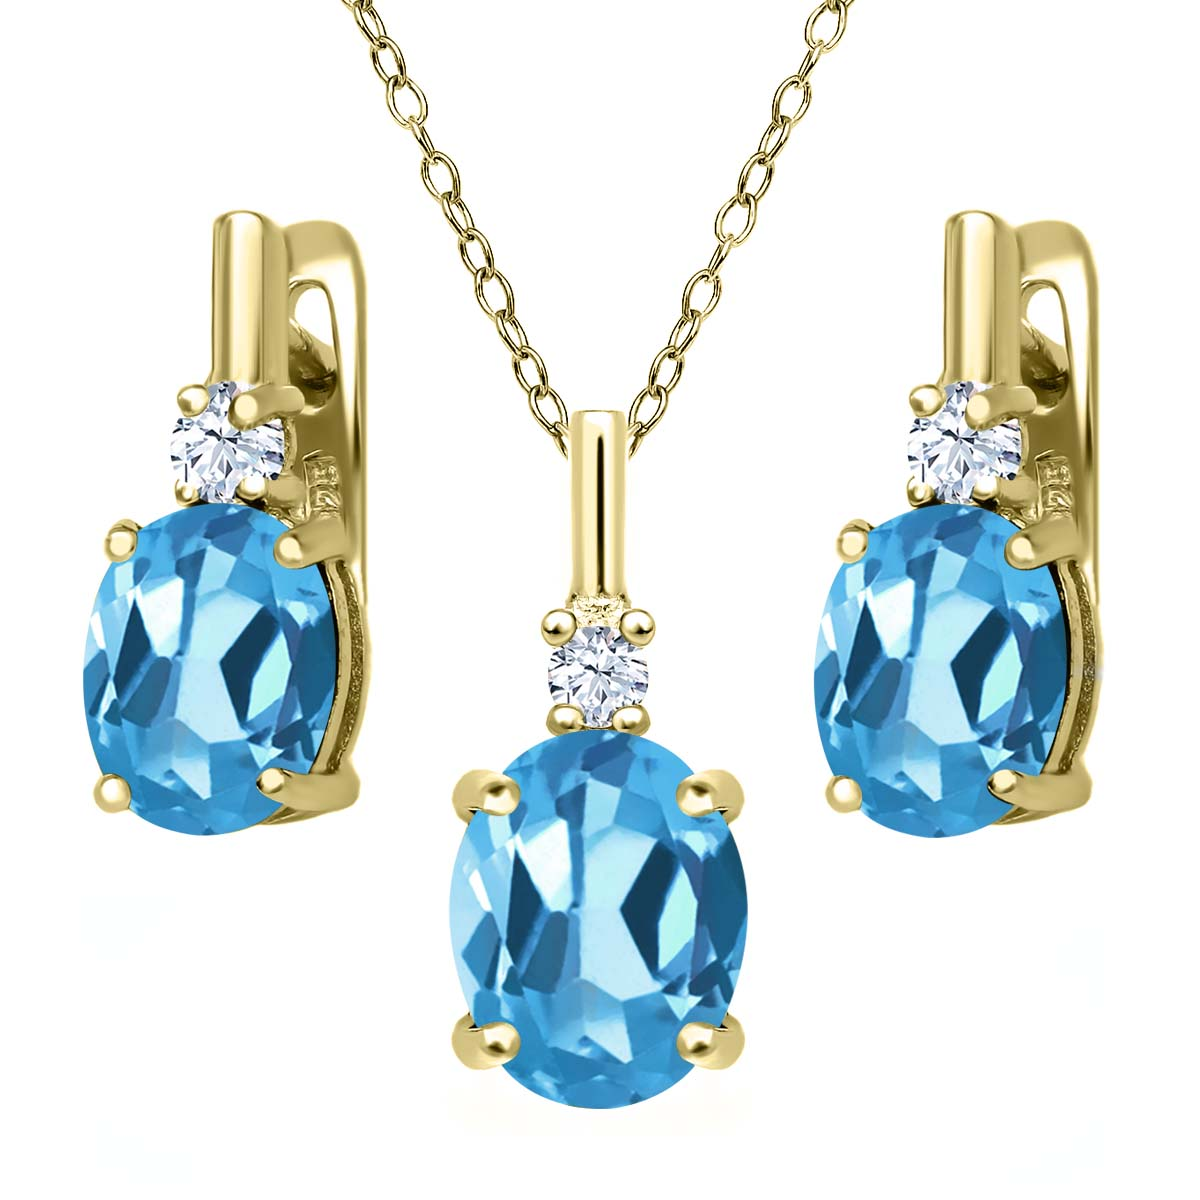 6.68 Ct Swiss Blue Topaz White Topaz 18K Yellow Gold Plated Silver Pendant Earrings Set by